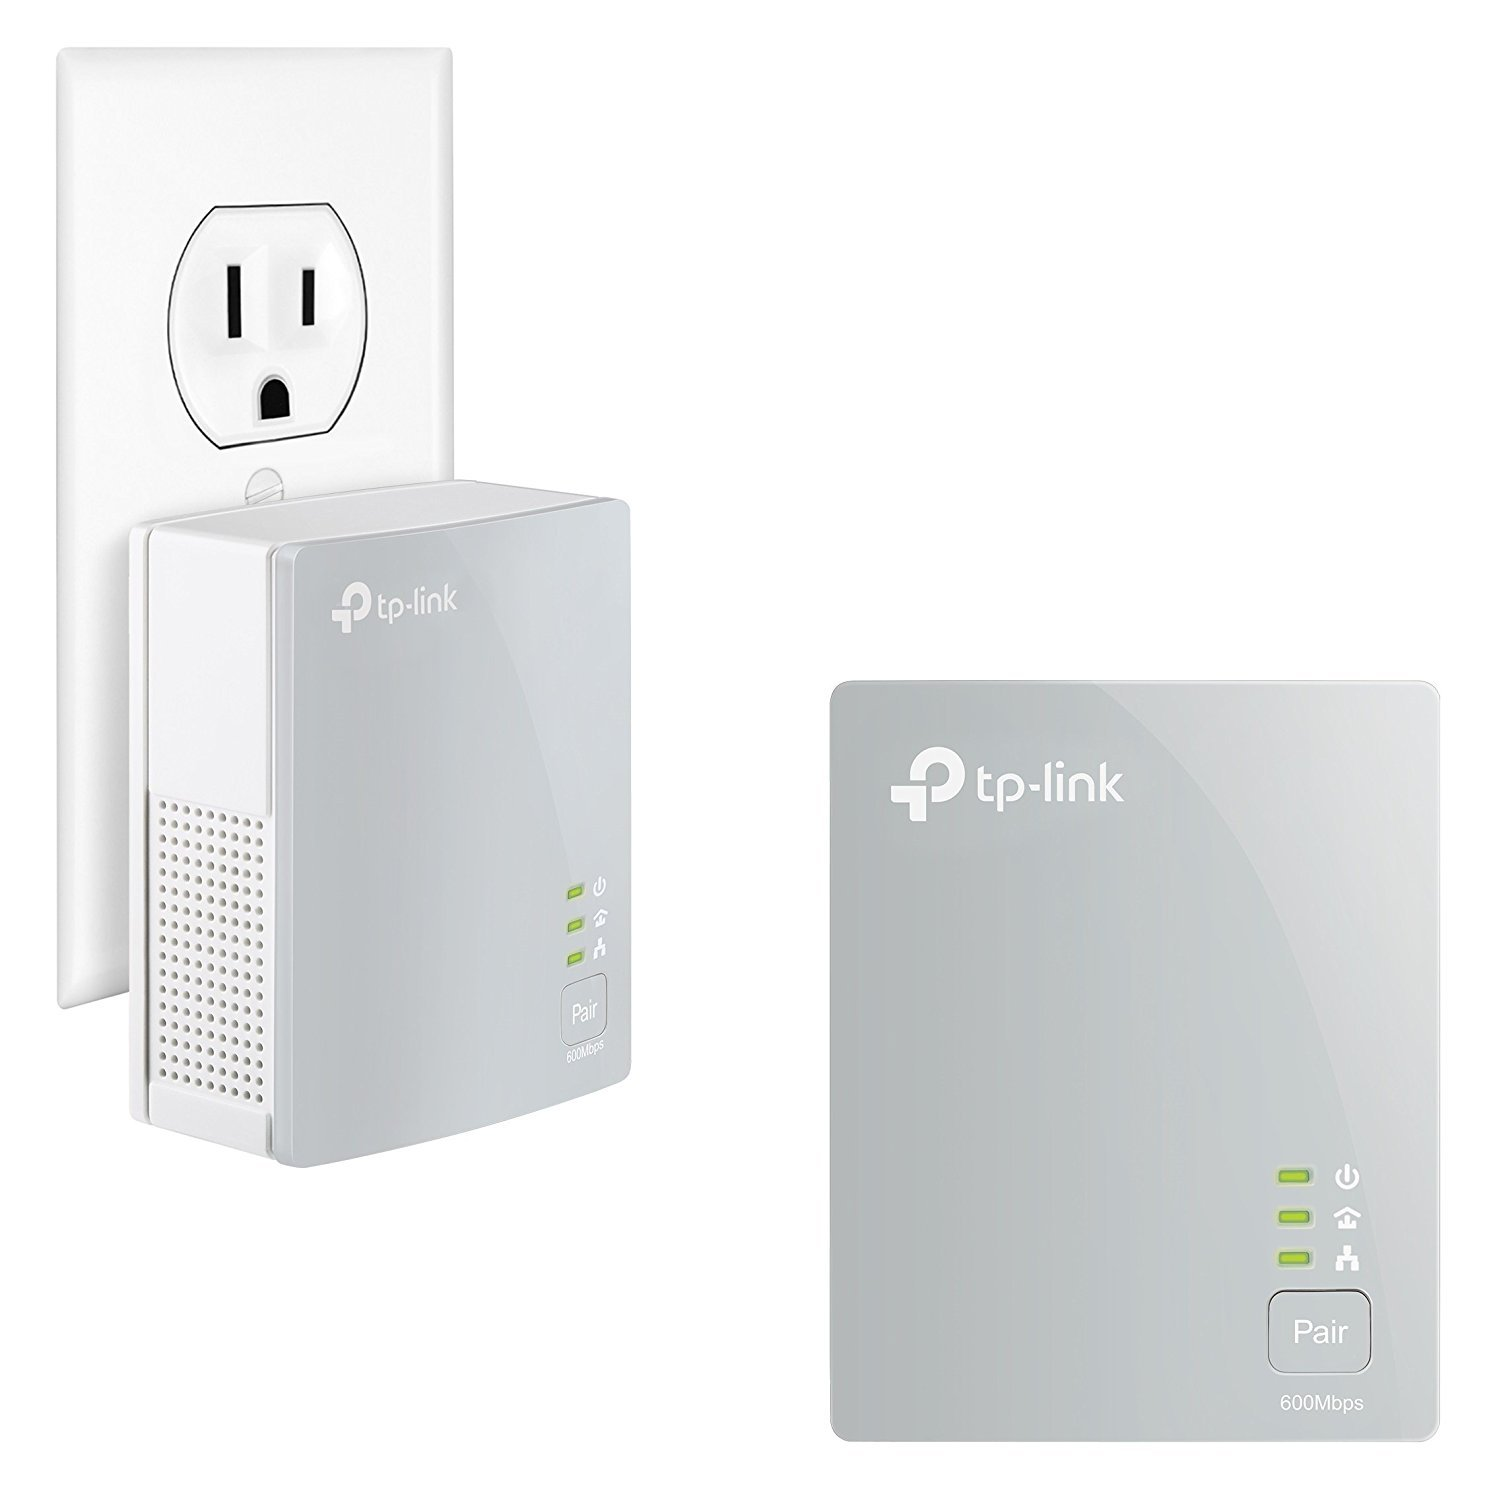 TP-Link AV600 Nano Powerline ethernet Adapter Starter Kit, Powerline speeds up to 600Mbps (TL-PA4010KIT)